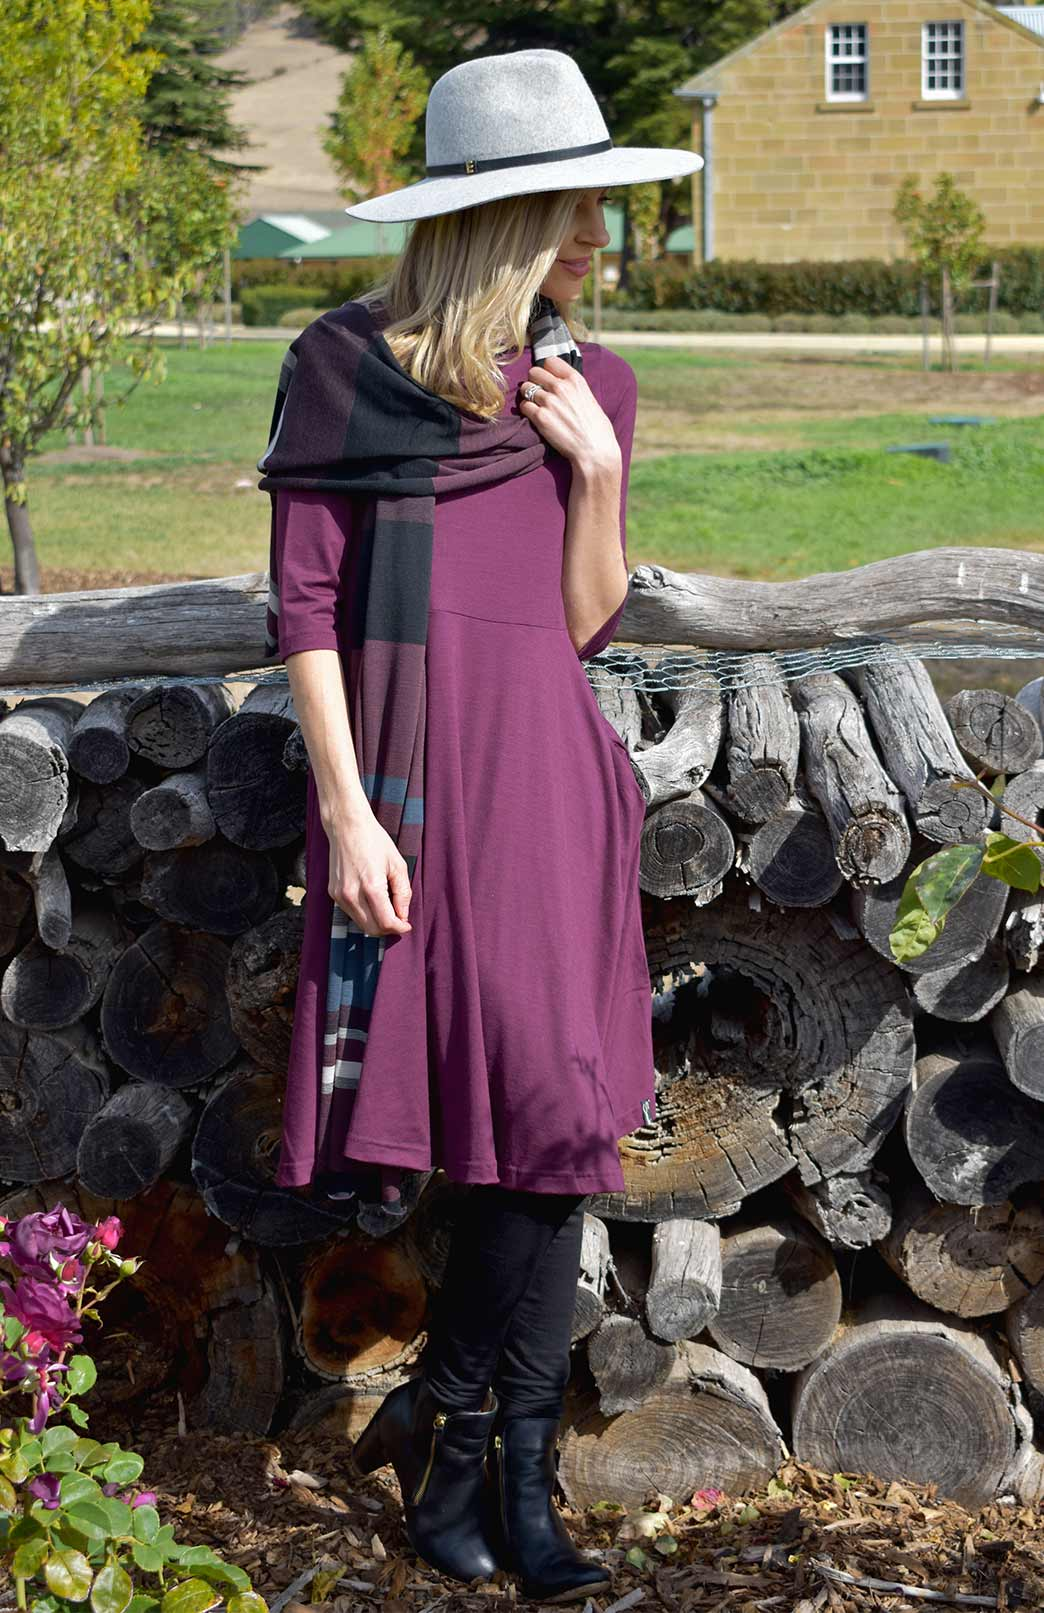 Mary Dress - Women's Aubergine Knee Length 3/4 Sleeved Fit and Flare Merino Wool Dress with Pockets - Smitten Merino Tasmania Australia